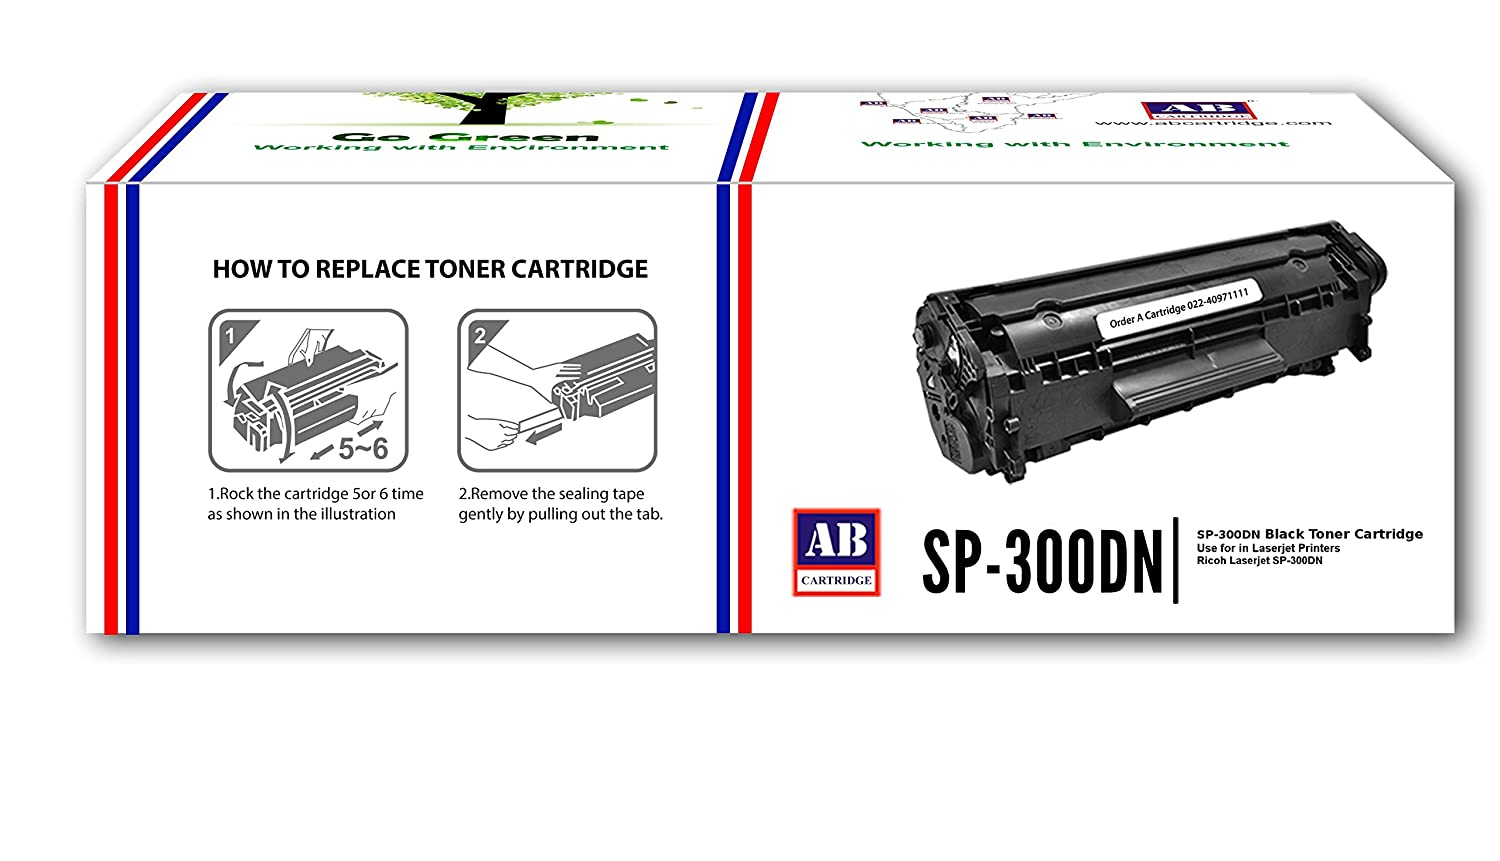 AB SP-300DN Compatible Black Toner Cartridge for Ricoh SP-300DN (HSN Code:  84439959)